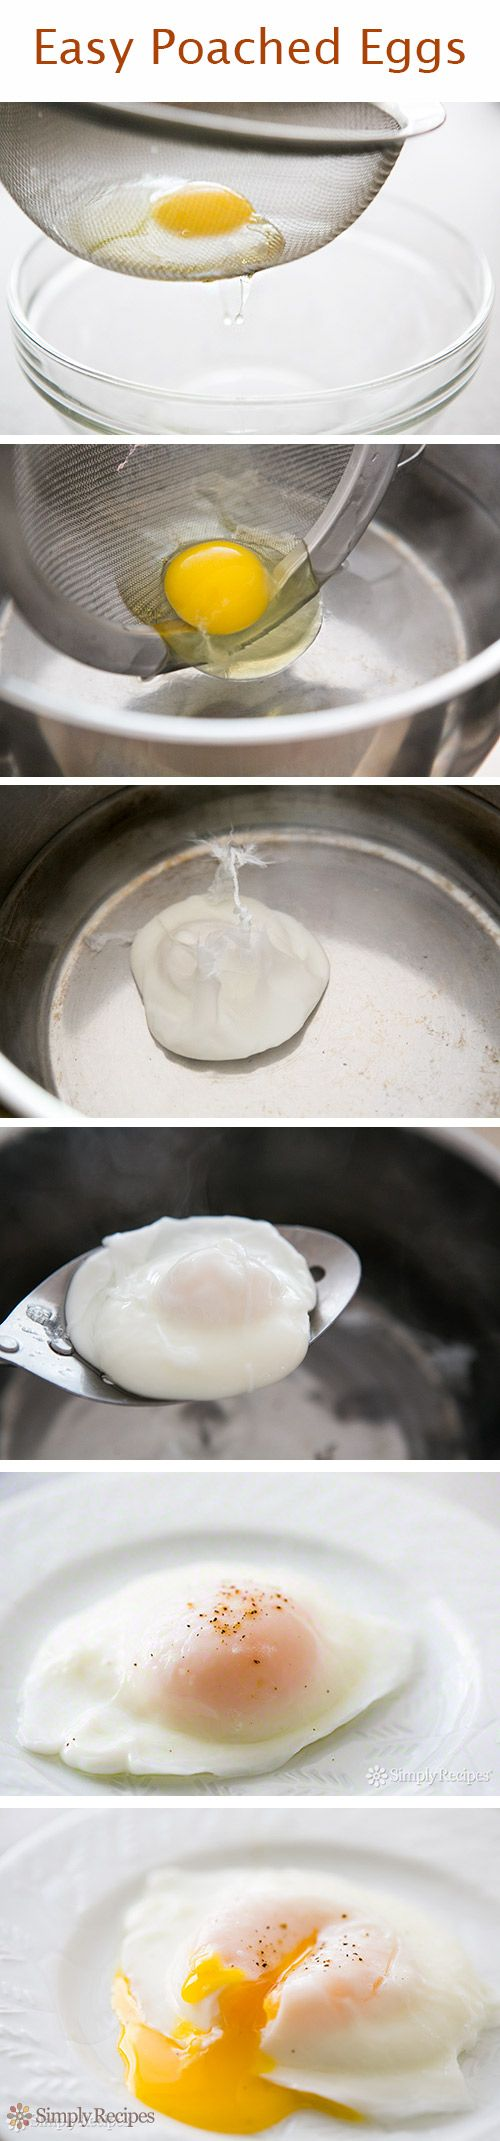 Cool tip for making poached eggs—use a sieve! Directions on SimplyRecipes.com